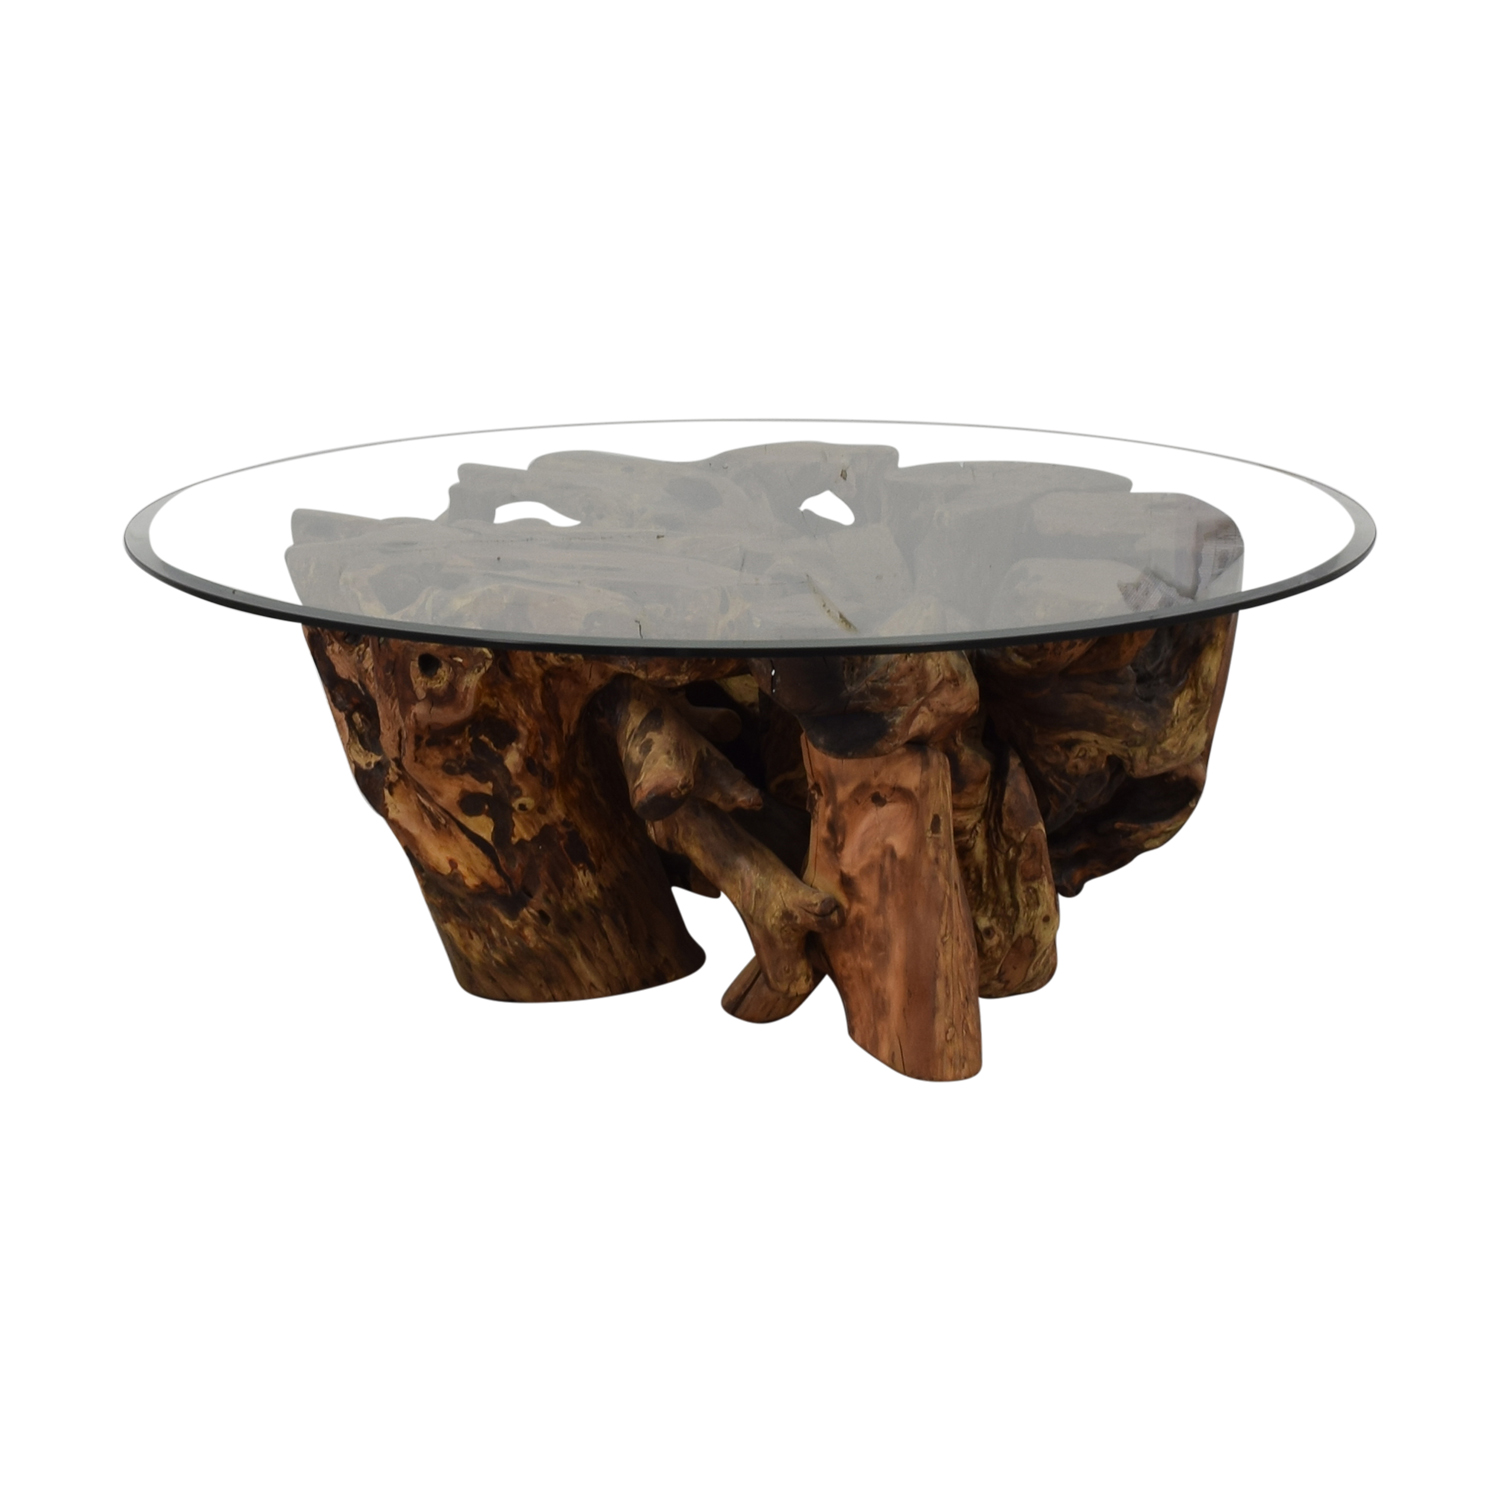 Control Brand Control Brand Wooden Tree Trunk Coffee Table price